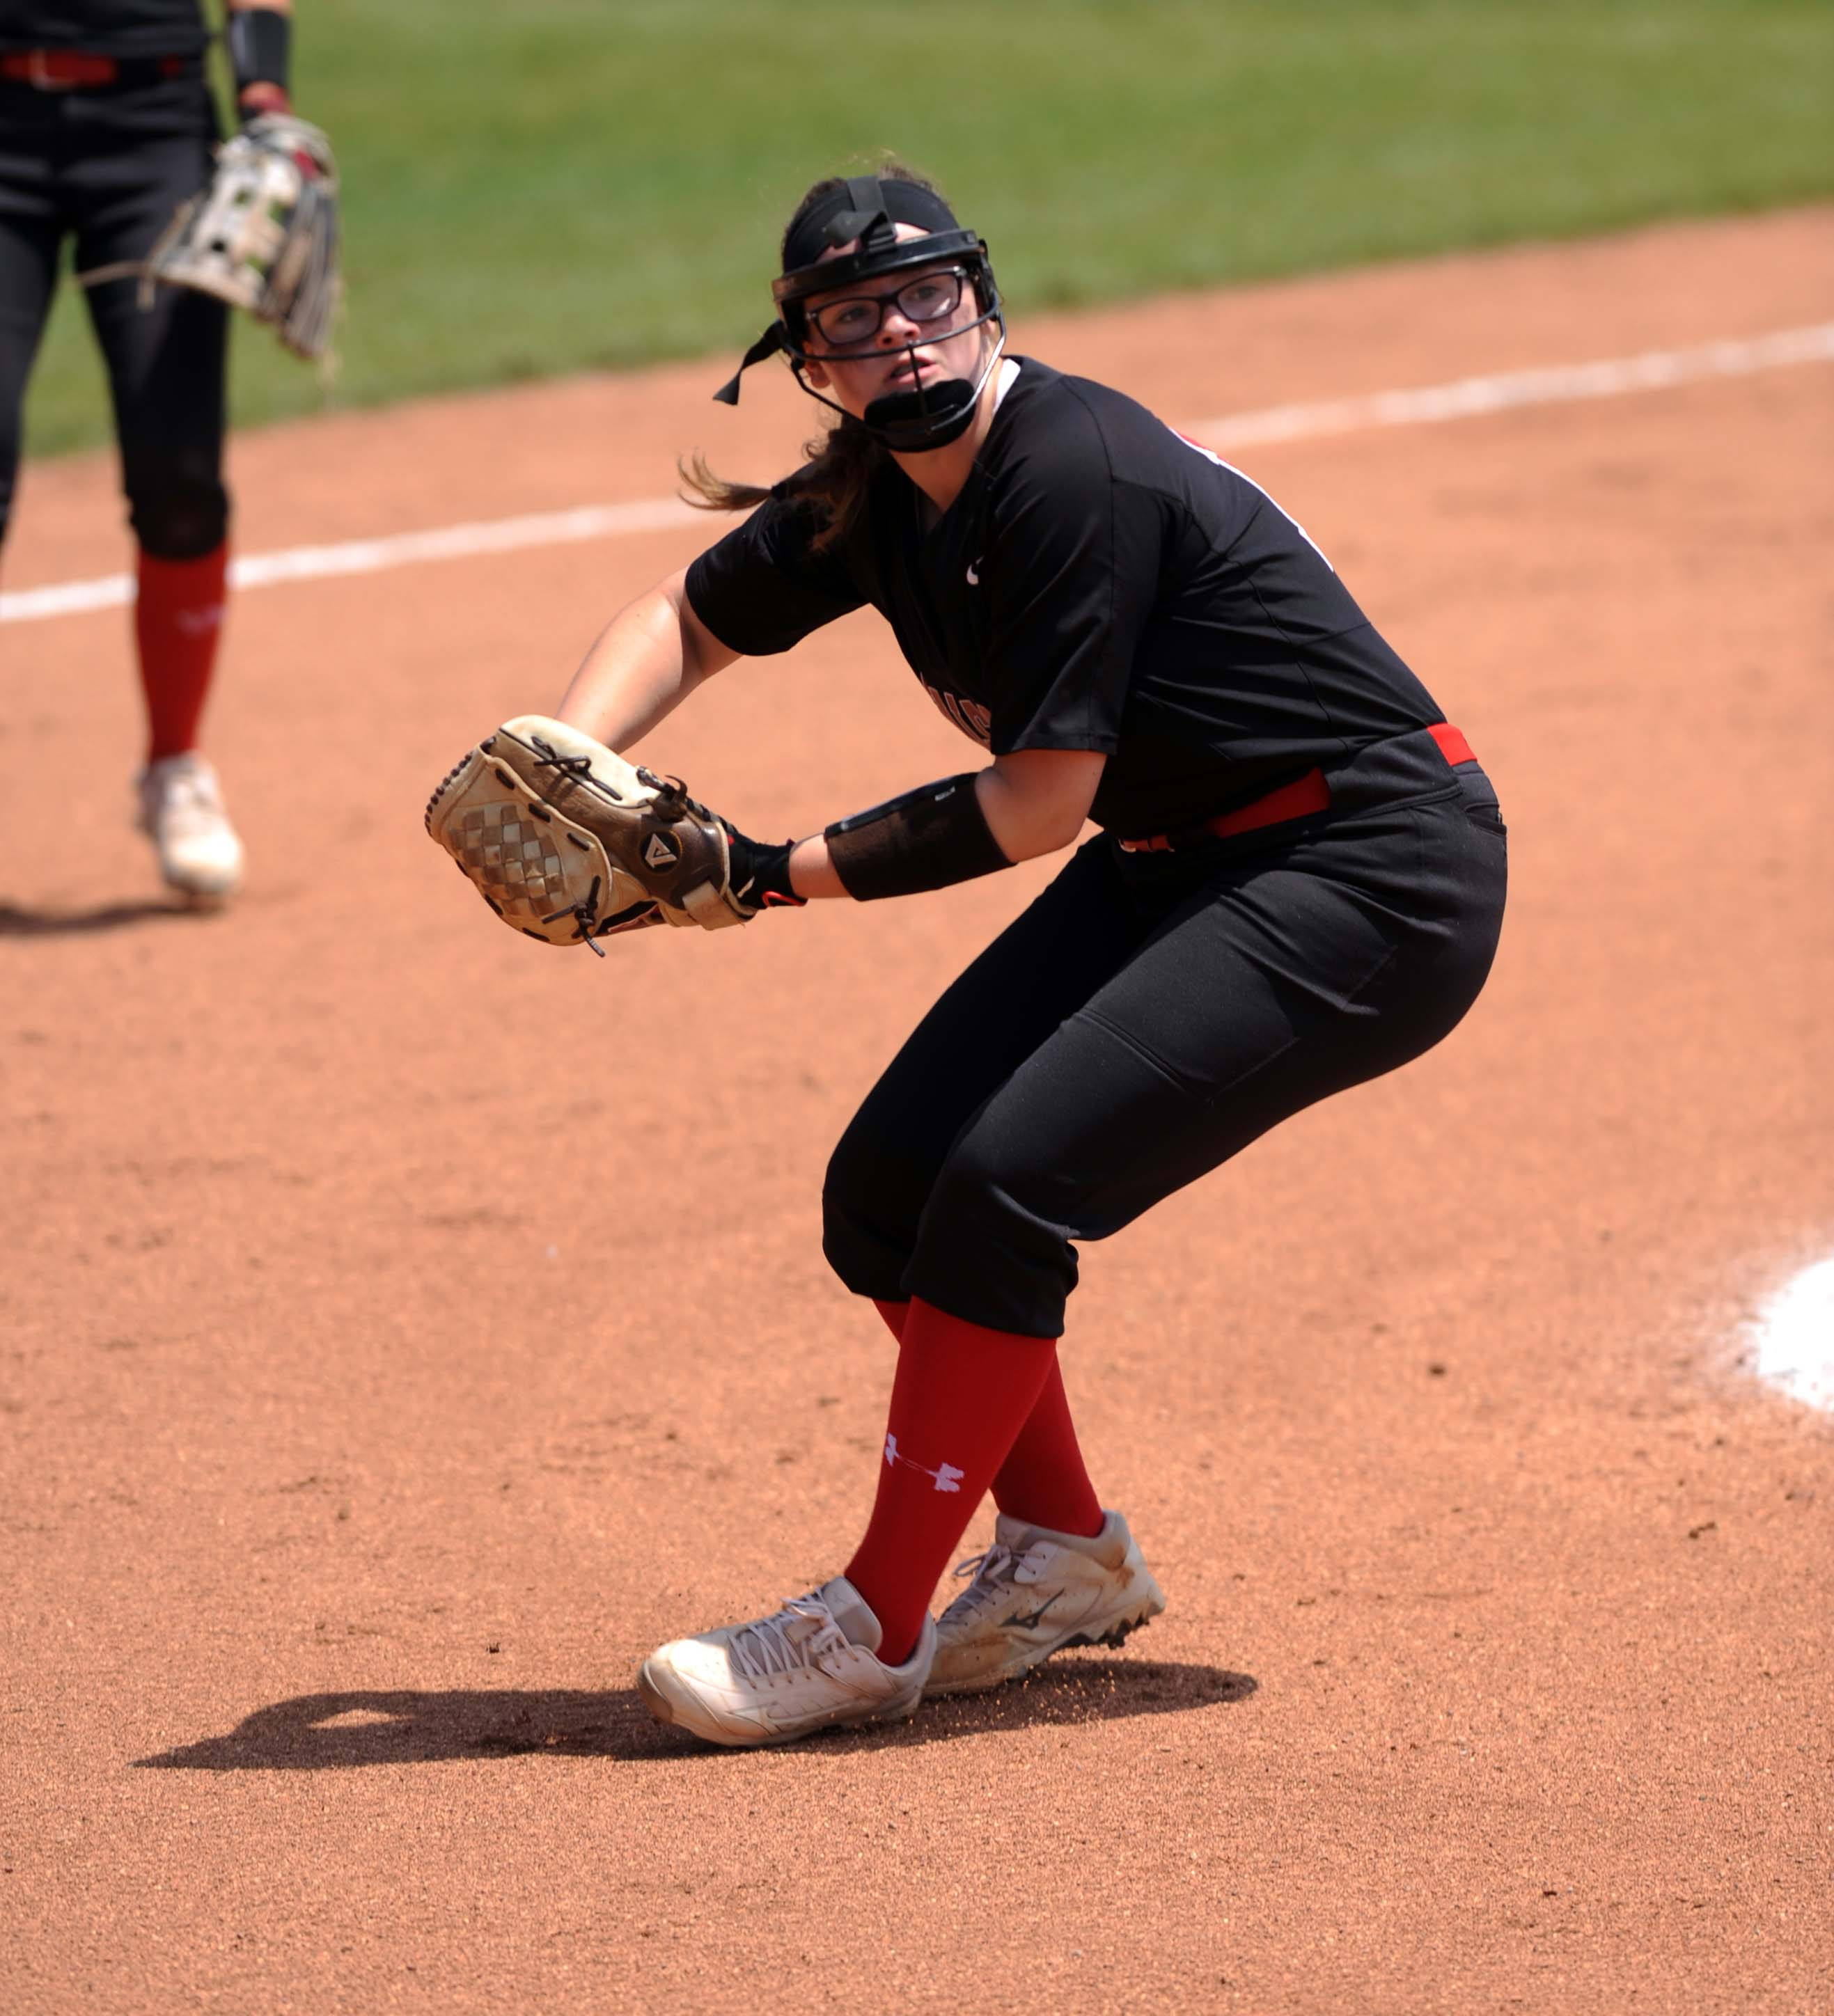 Fairfield Union pitcher Laikyn Teasley fields the ball during the 2018 Division II state semifinal in Akron. They lost 1-0 to top-ranked LeGrange Keystone. The Falcons entered last year's tournament with a sub-.500 record, but were able to have a magical tournament run.